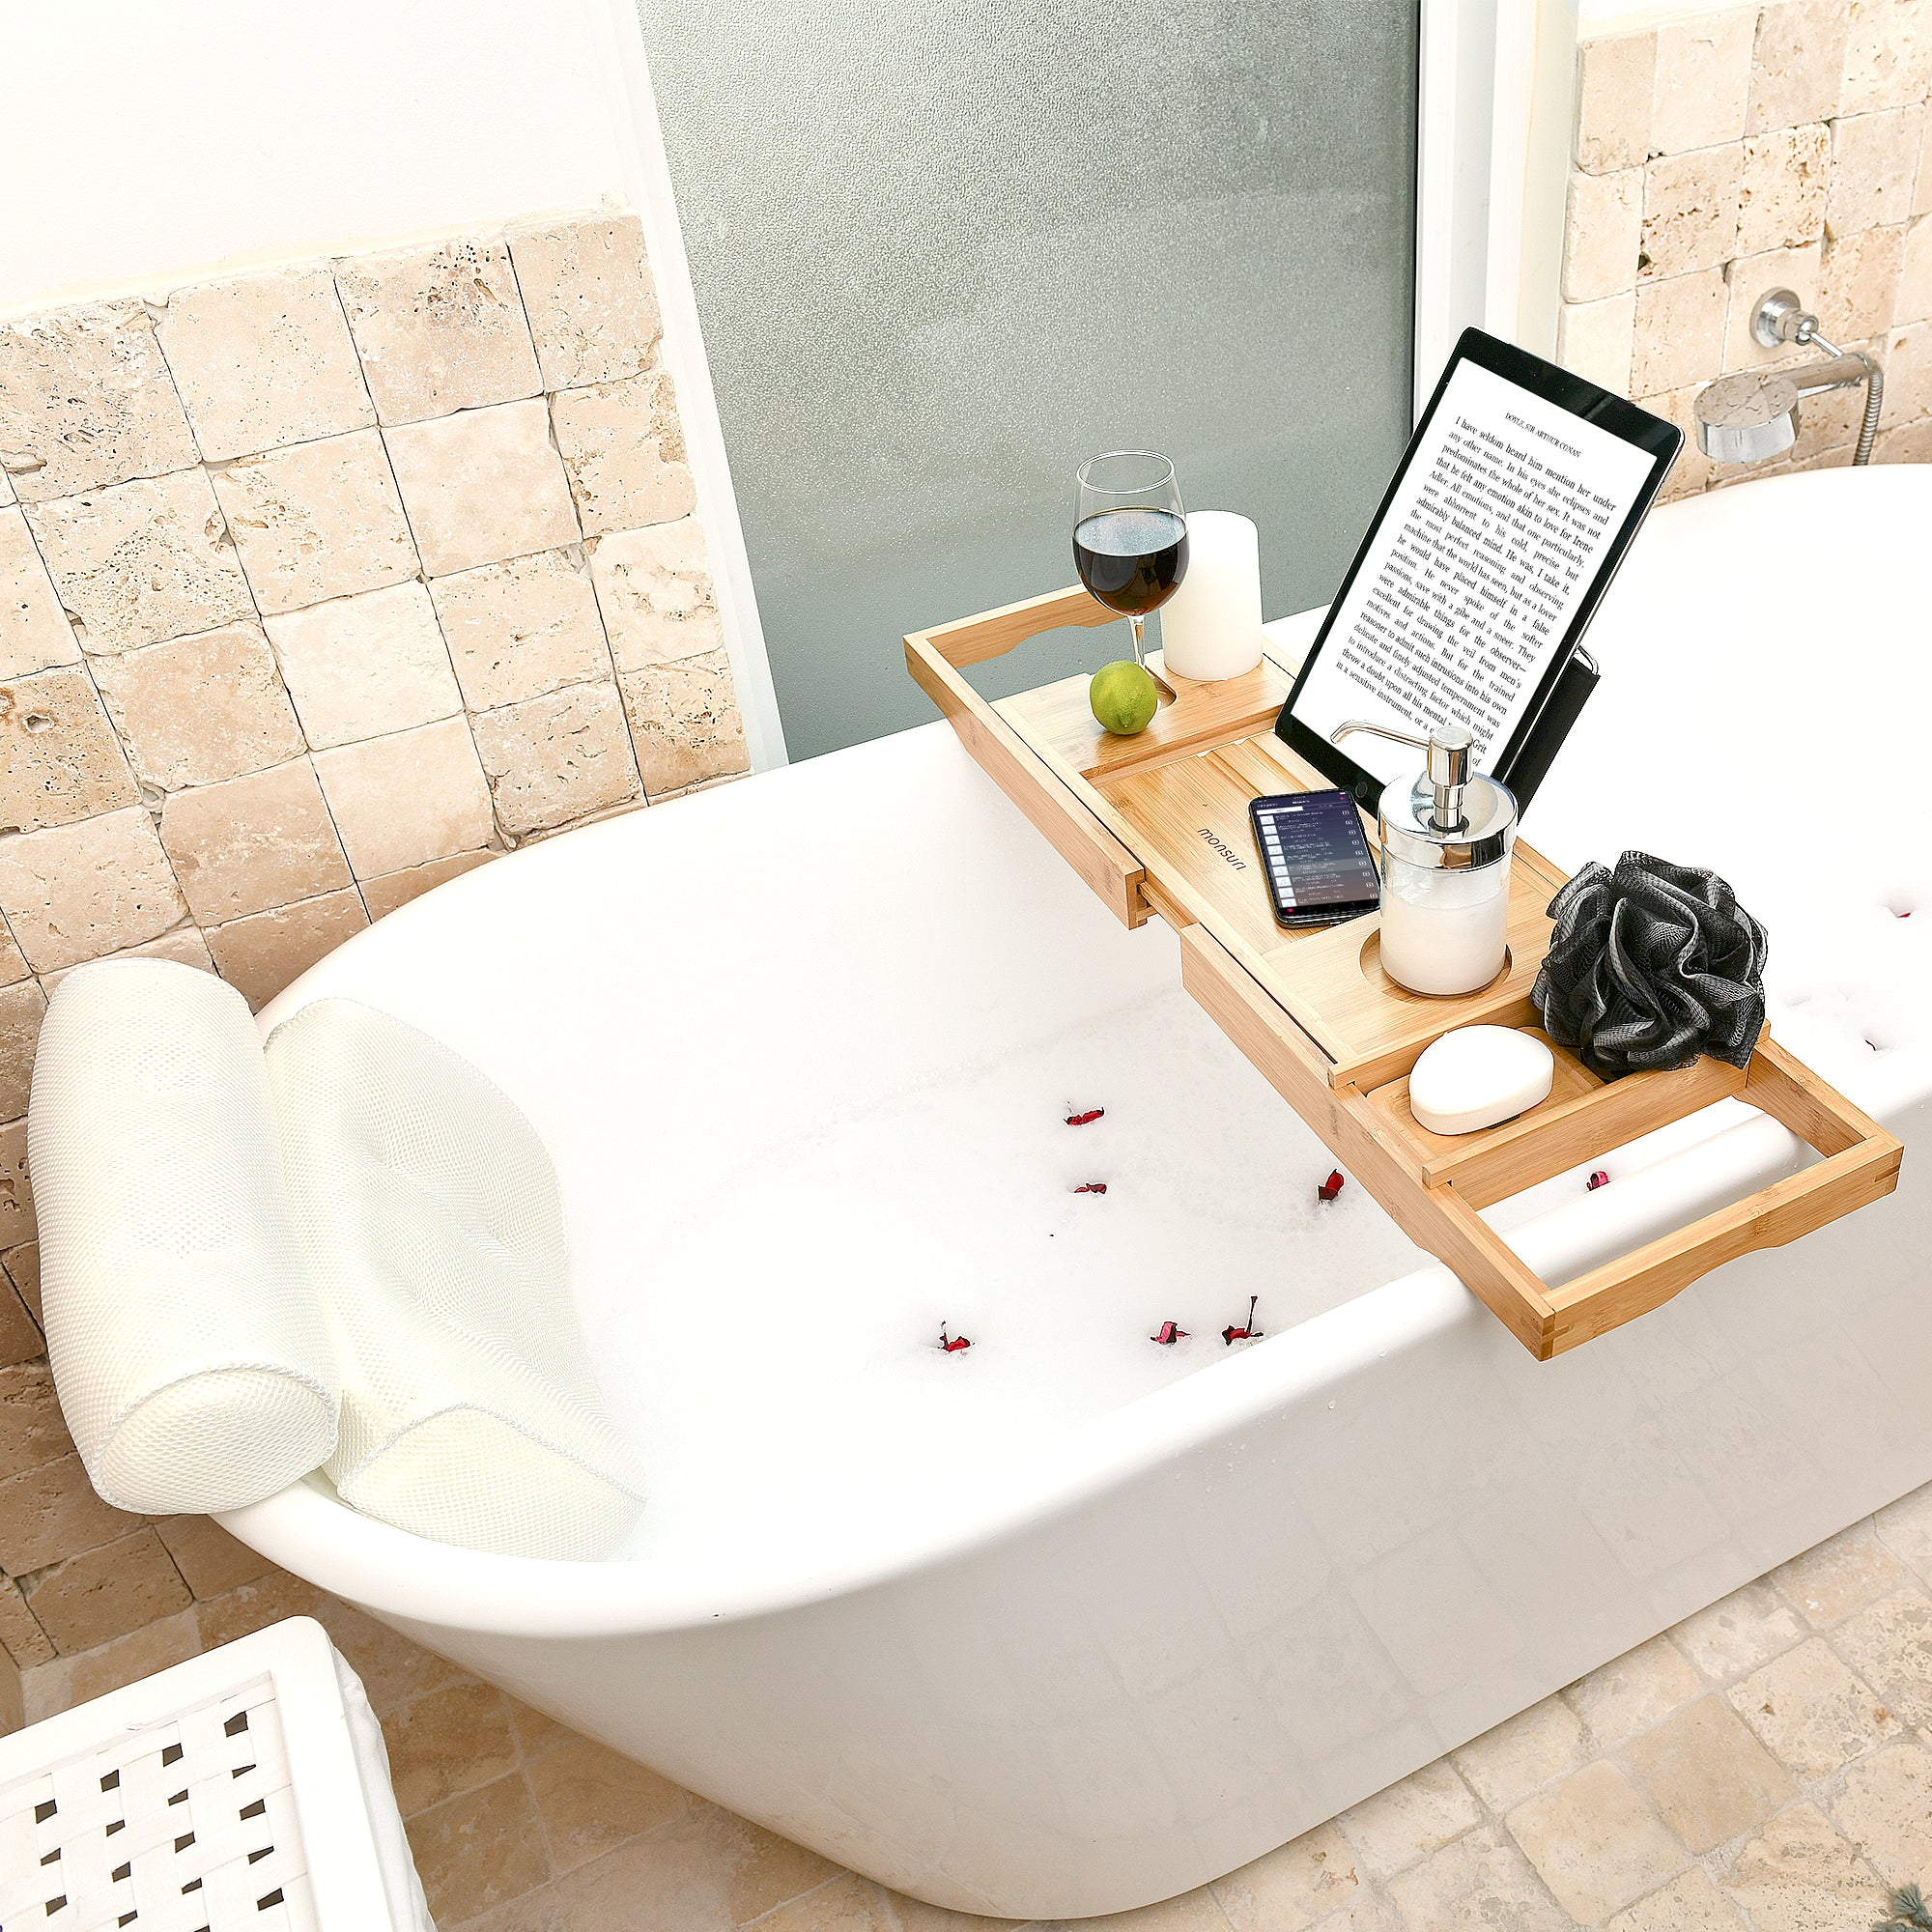 Bubble Bath Accessories - Bathtub Tray and Bath Pillow for an At-Home Spa Experience - Gifts for Women